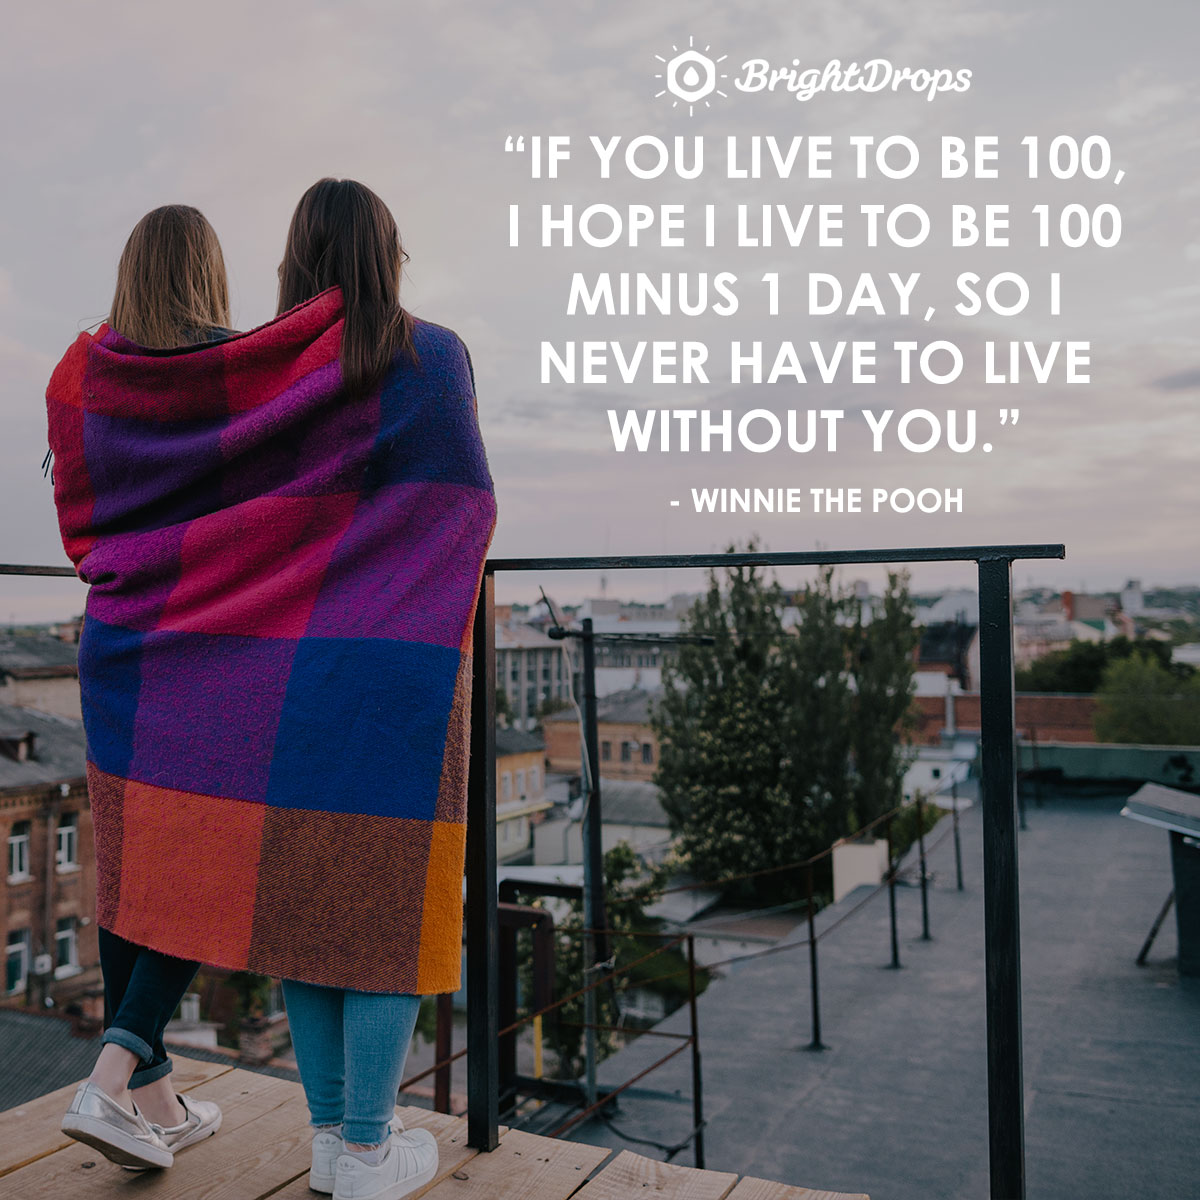 If you live to be 100, I hope I live to be 100 minus 1 day, so I never have to live without you. - Winnie the Pooh